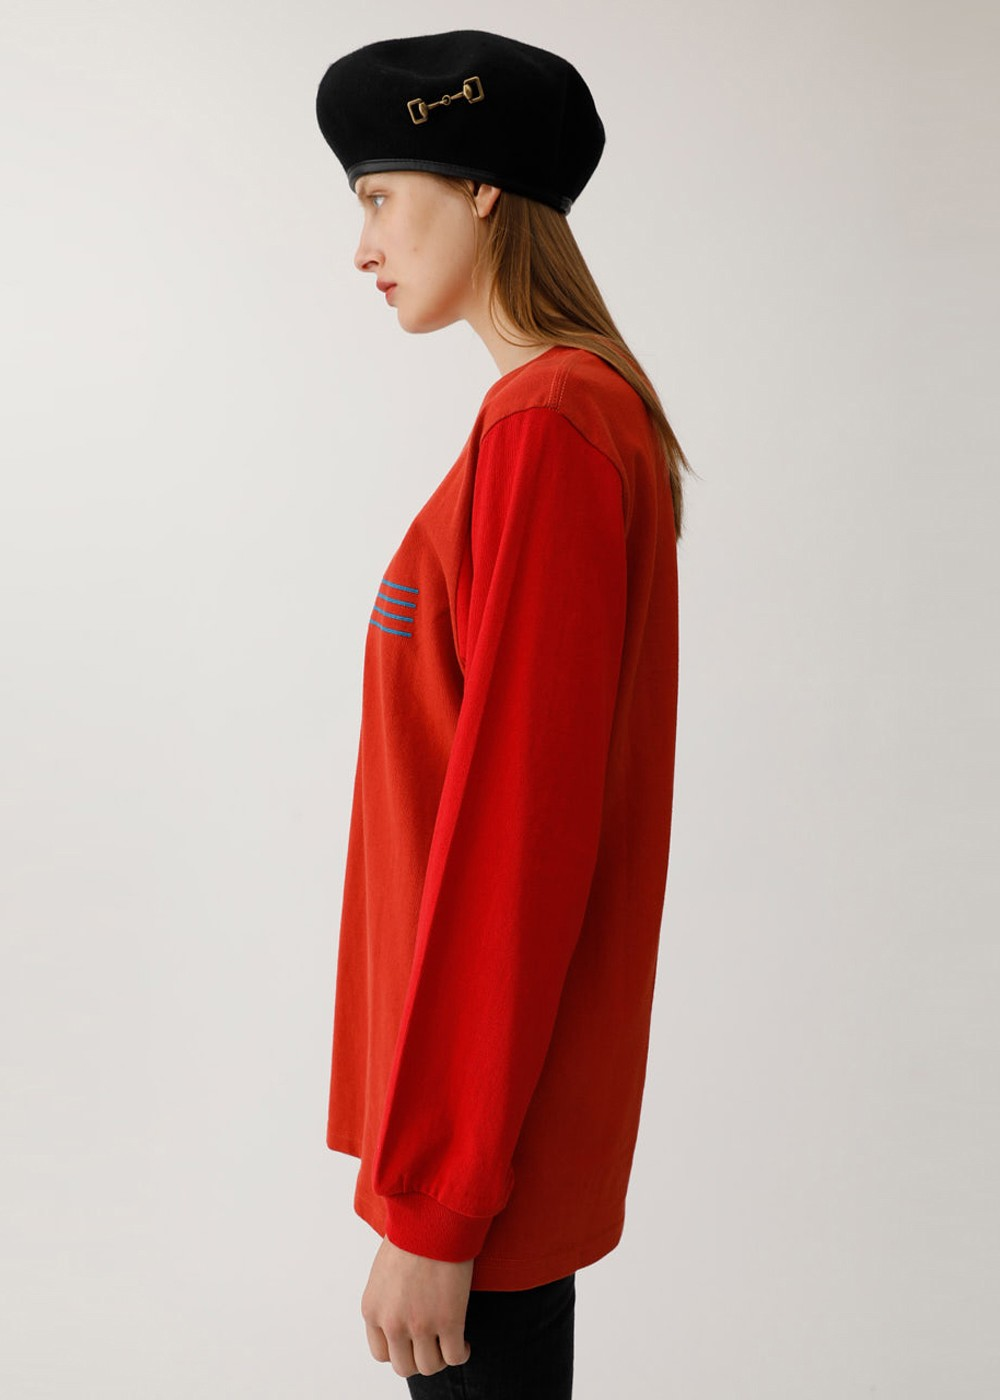 【最大60%OFF】FAMS LS TSJ|D/RED|Tシャツ|MOUSSY